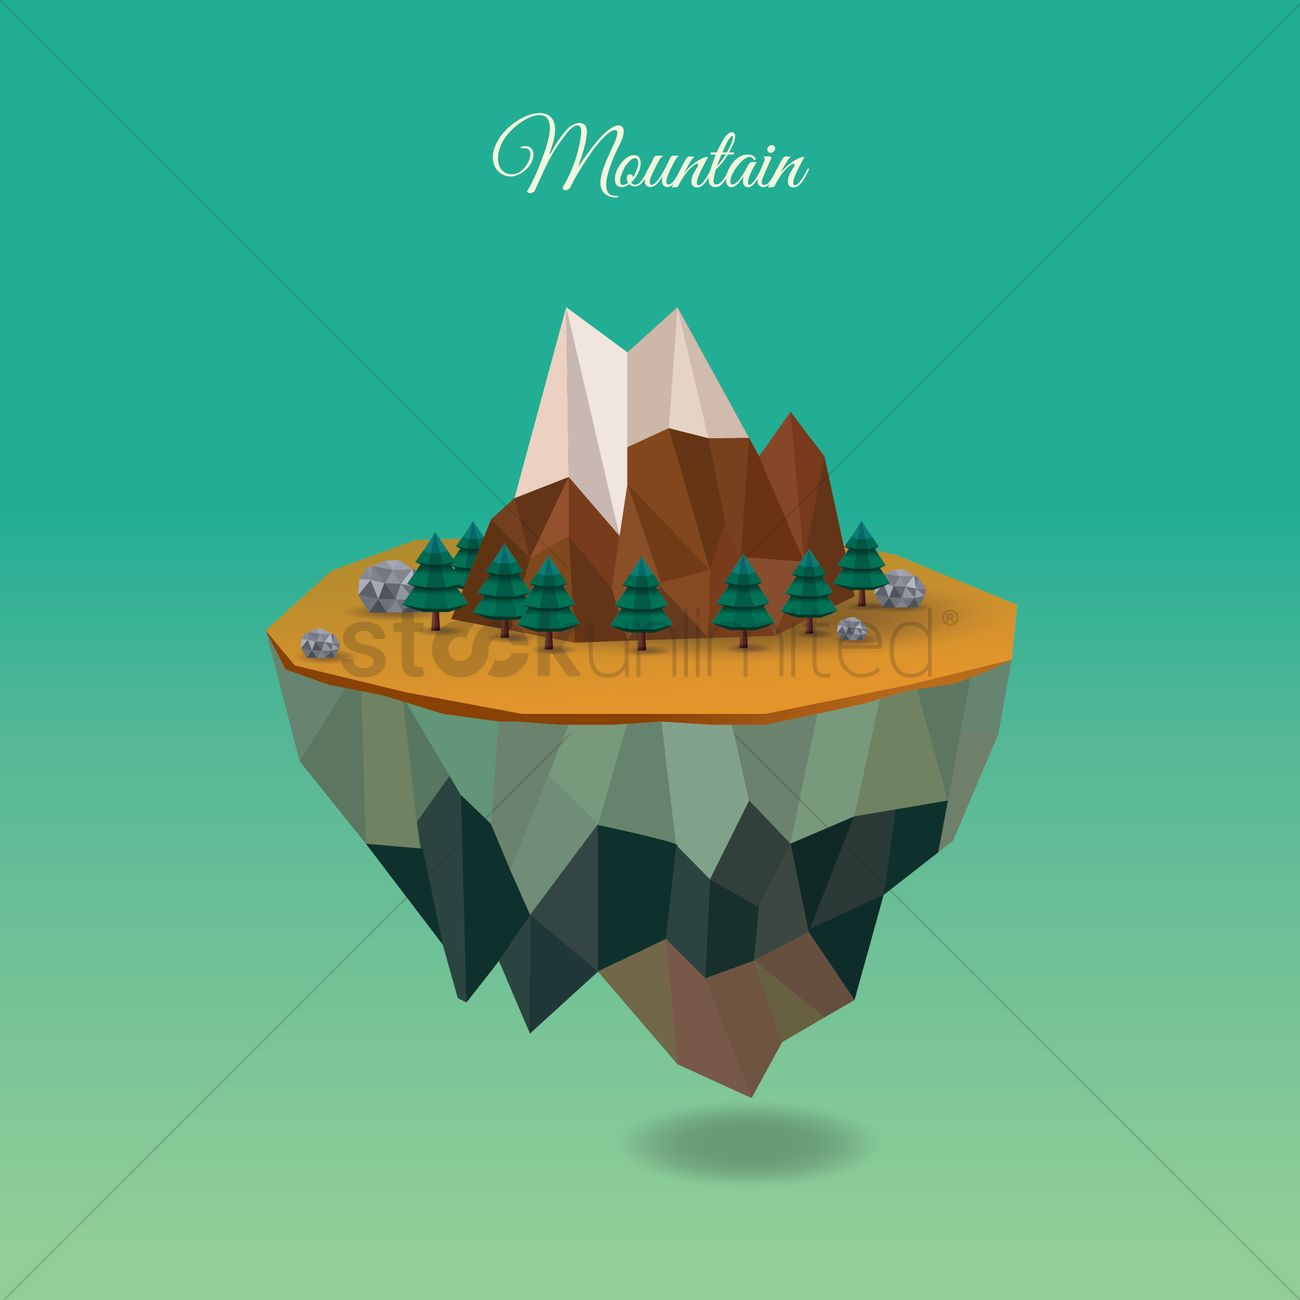 Floating Island svg #18, Download drawings